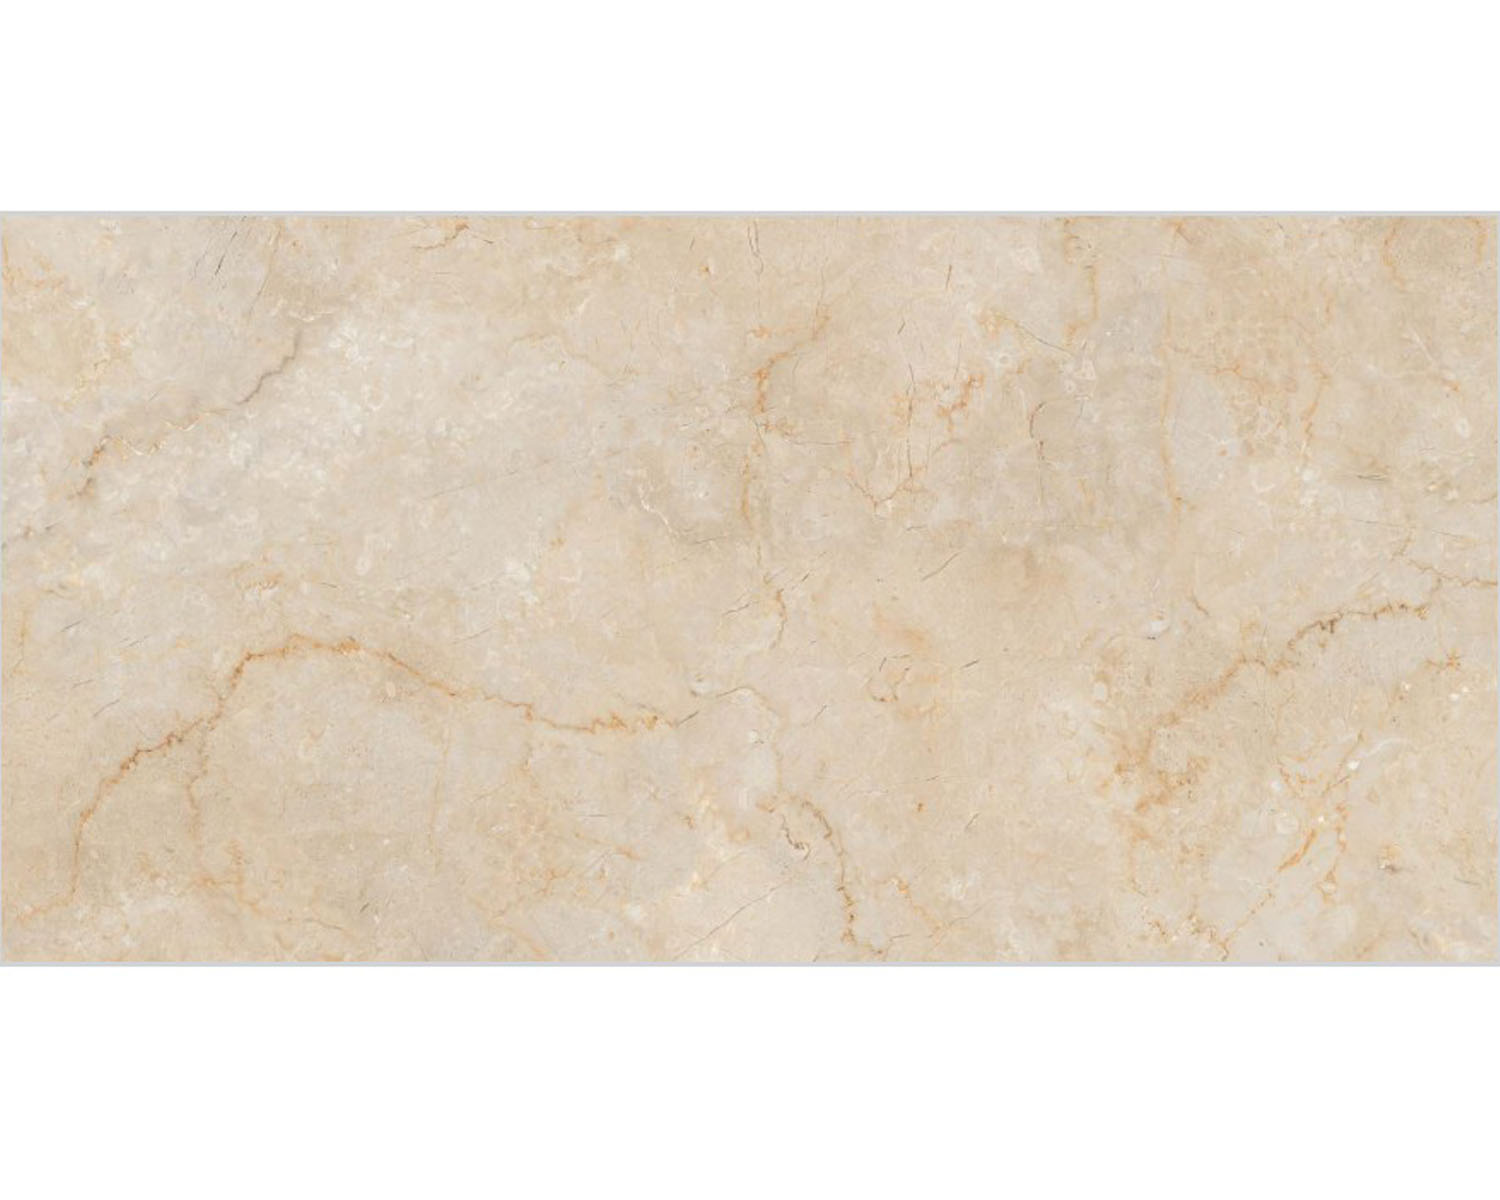 Floor Tiles Bottichino Glossy Polished Floor Tiles 800 mm x 1600 mm